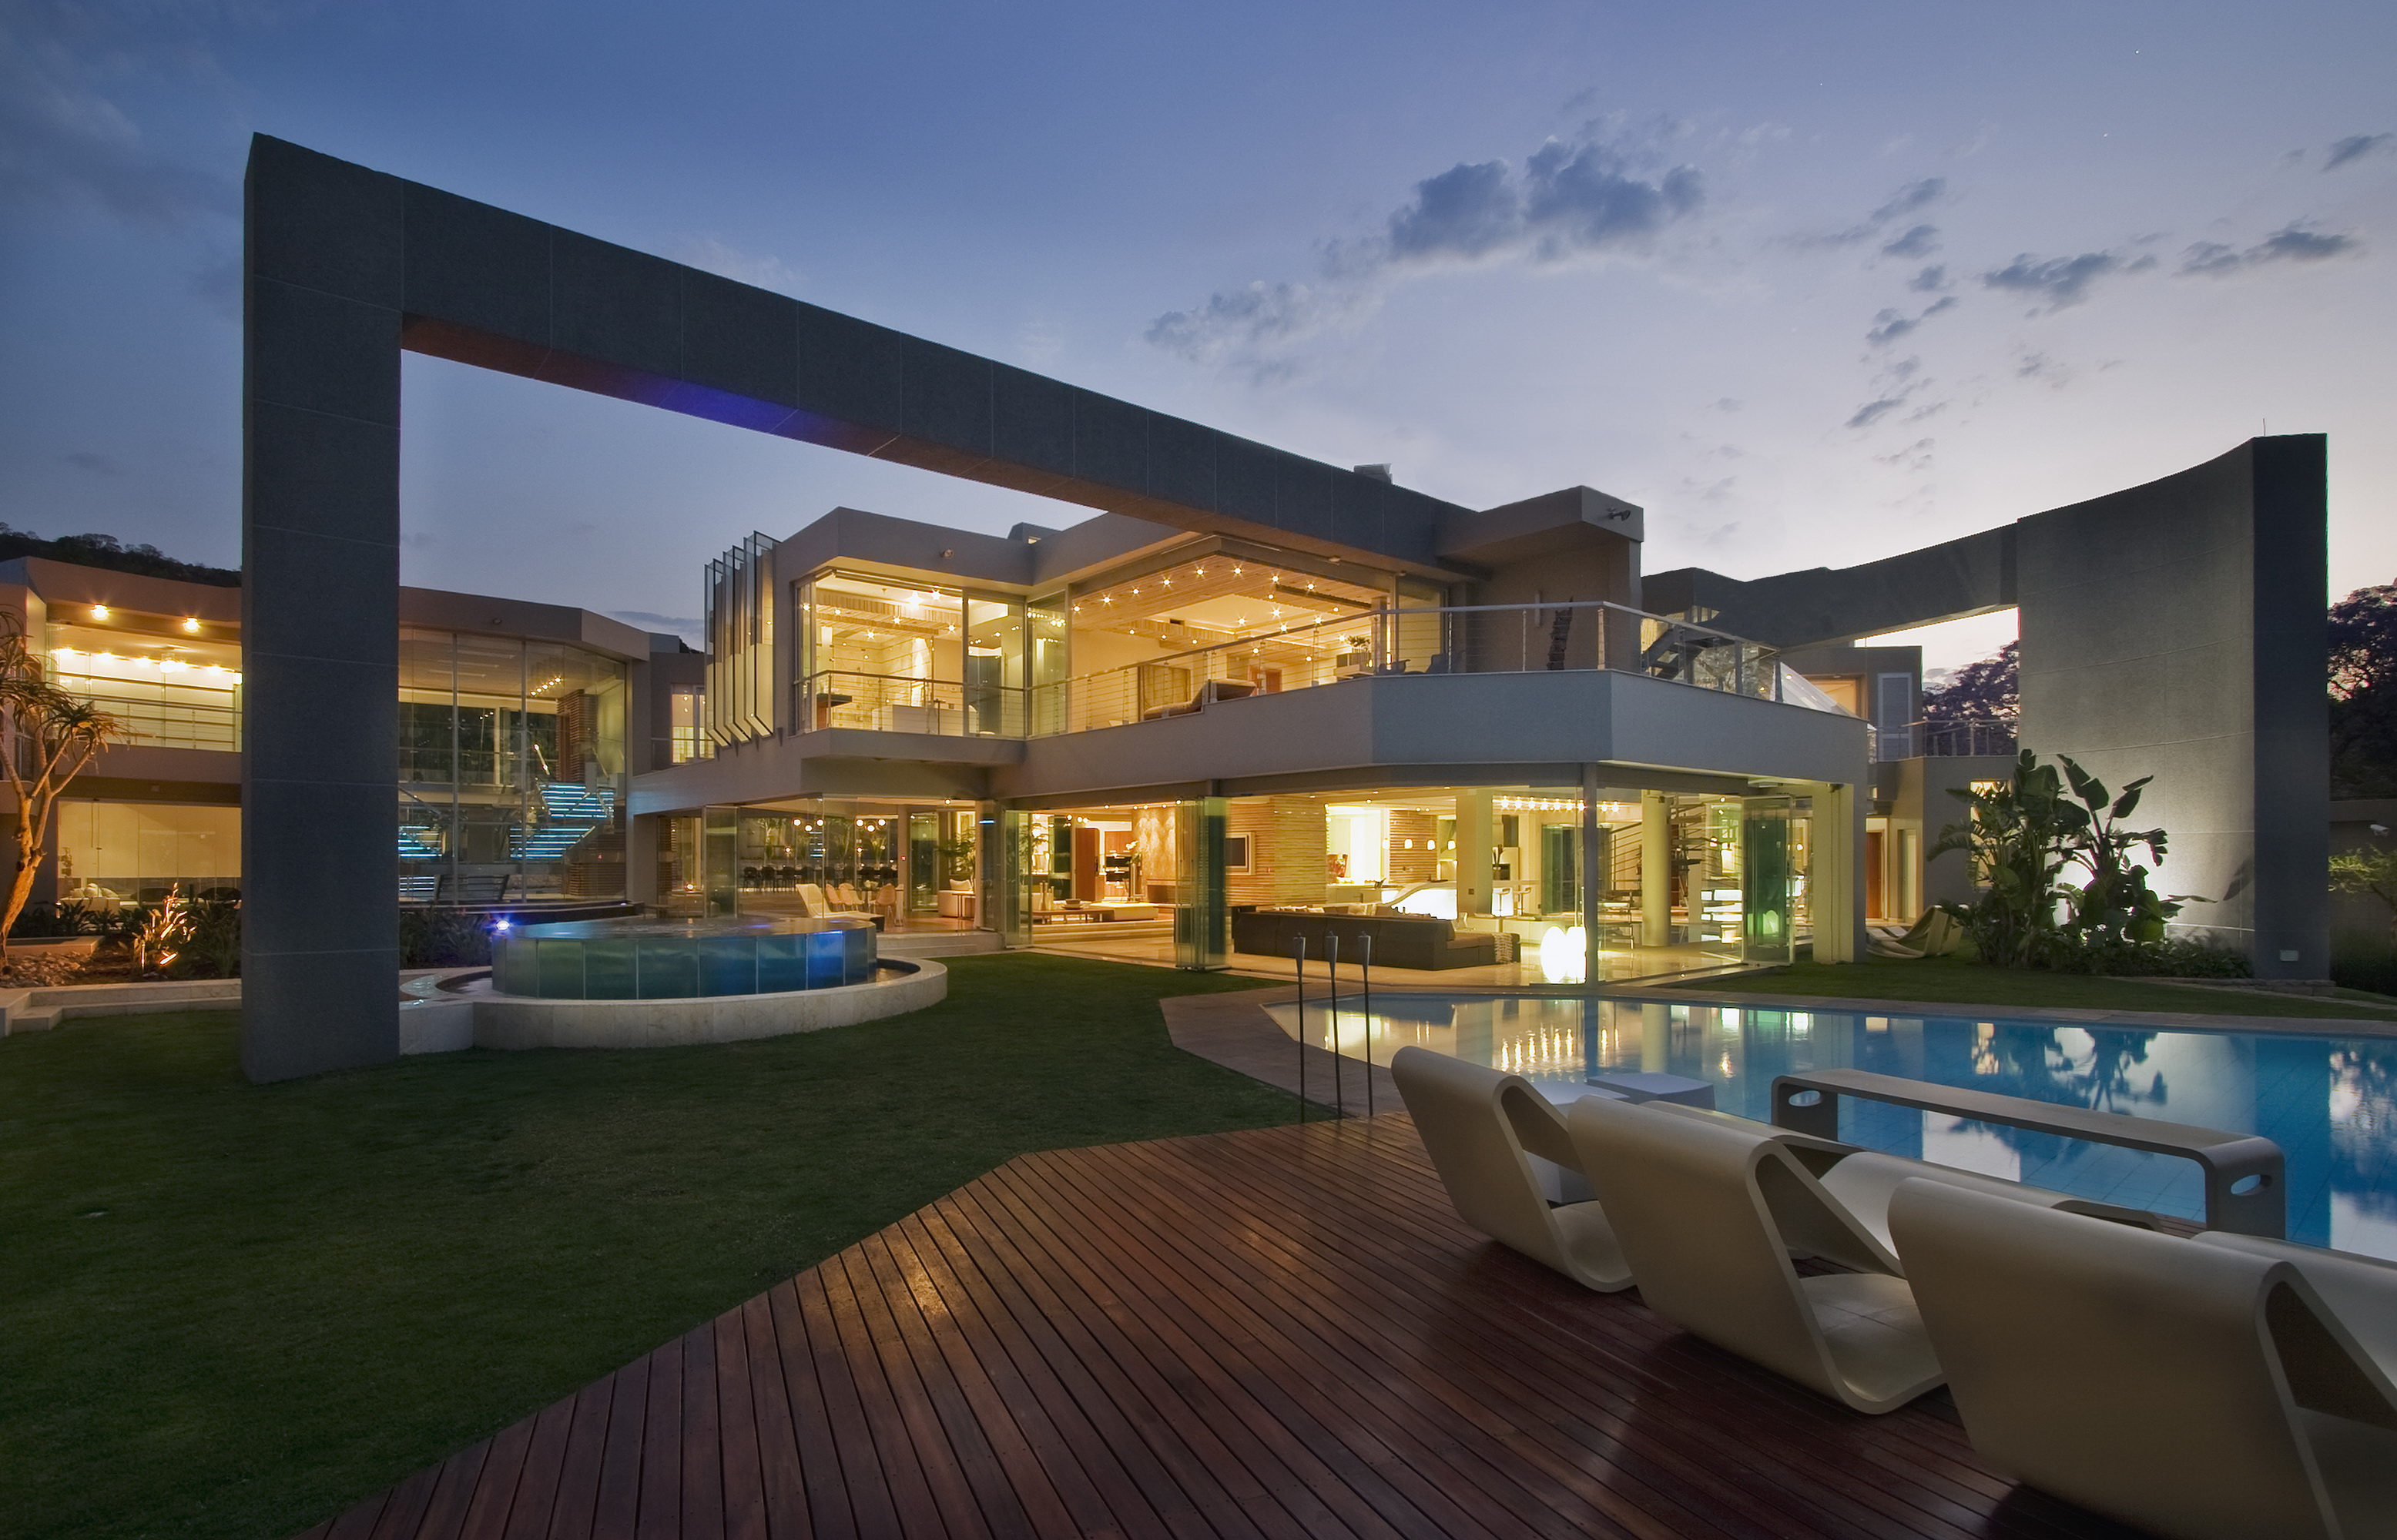 Glass House Architect Magazine Nico van der Meulen Architects